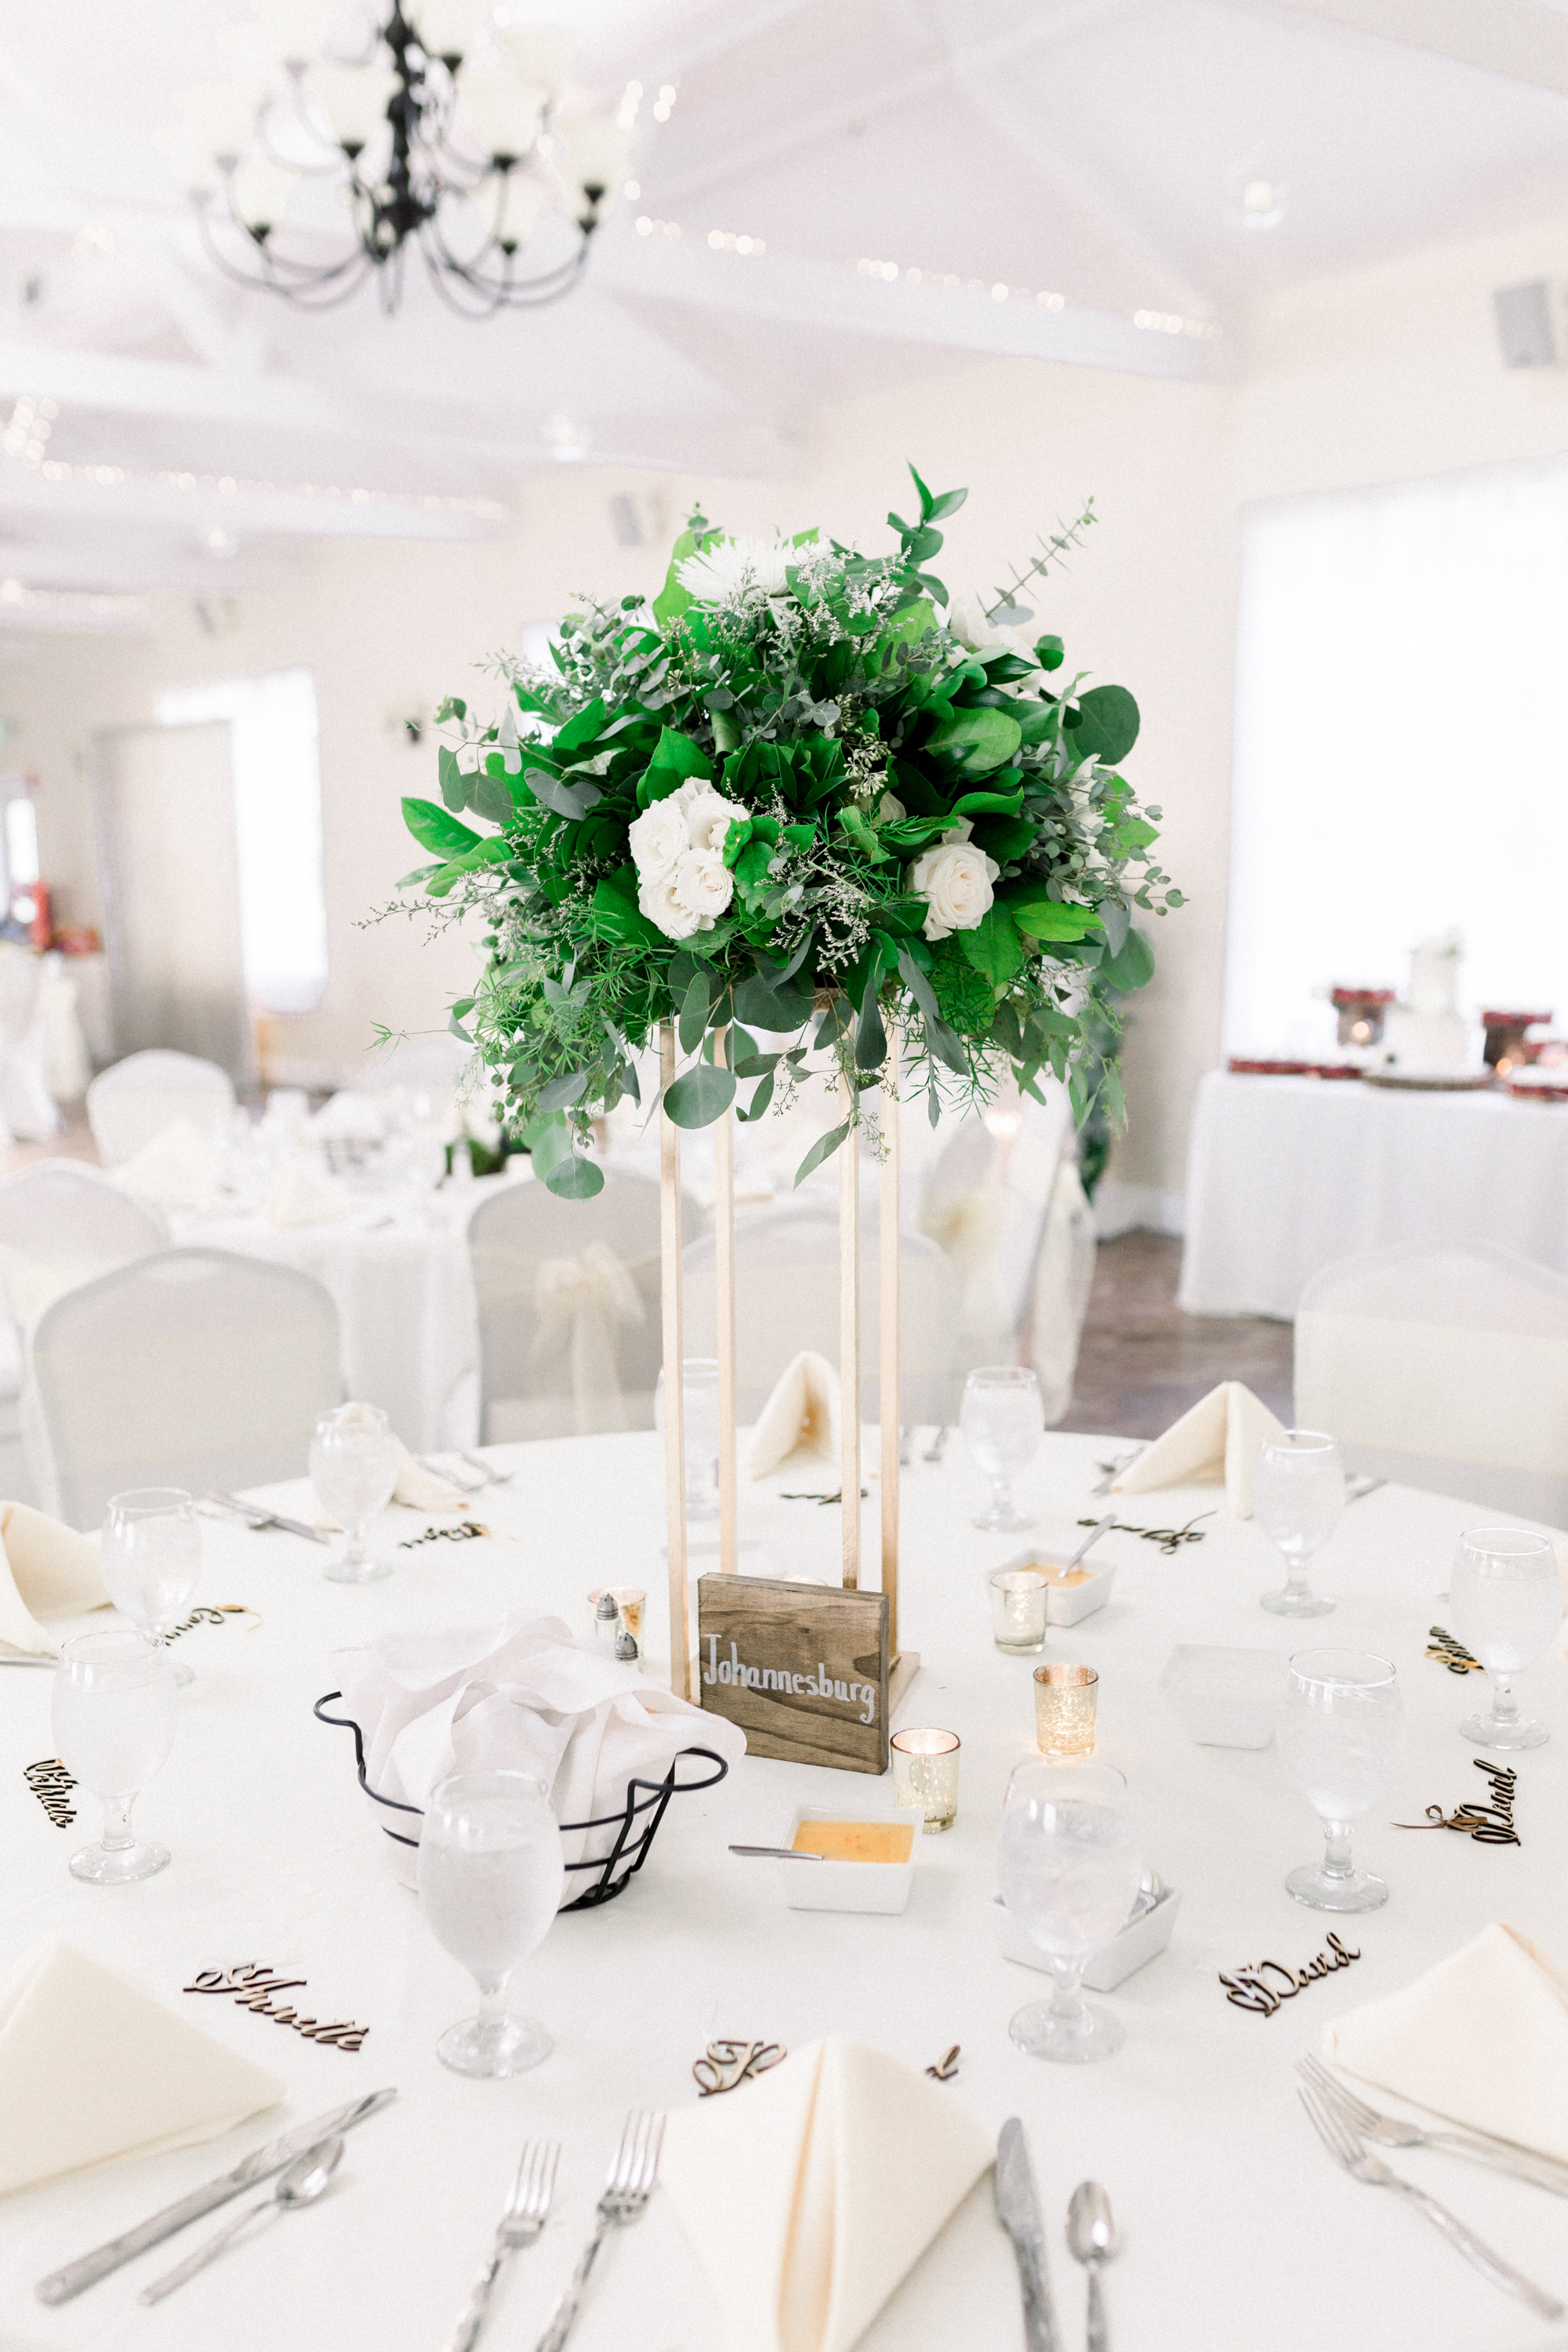 Tall wedding centerpieces with gold and wooden accents for Pittsburgh wedding planned by Exhale Events. Find more wedding inspiration at exhale-events.com!